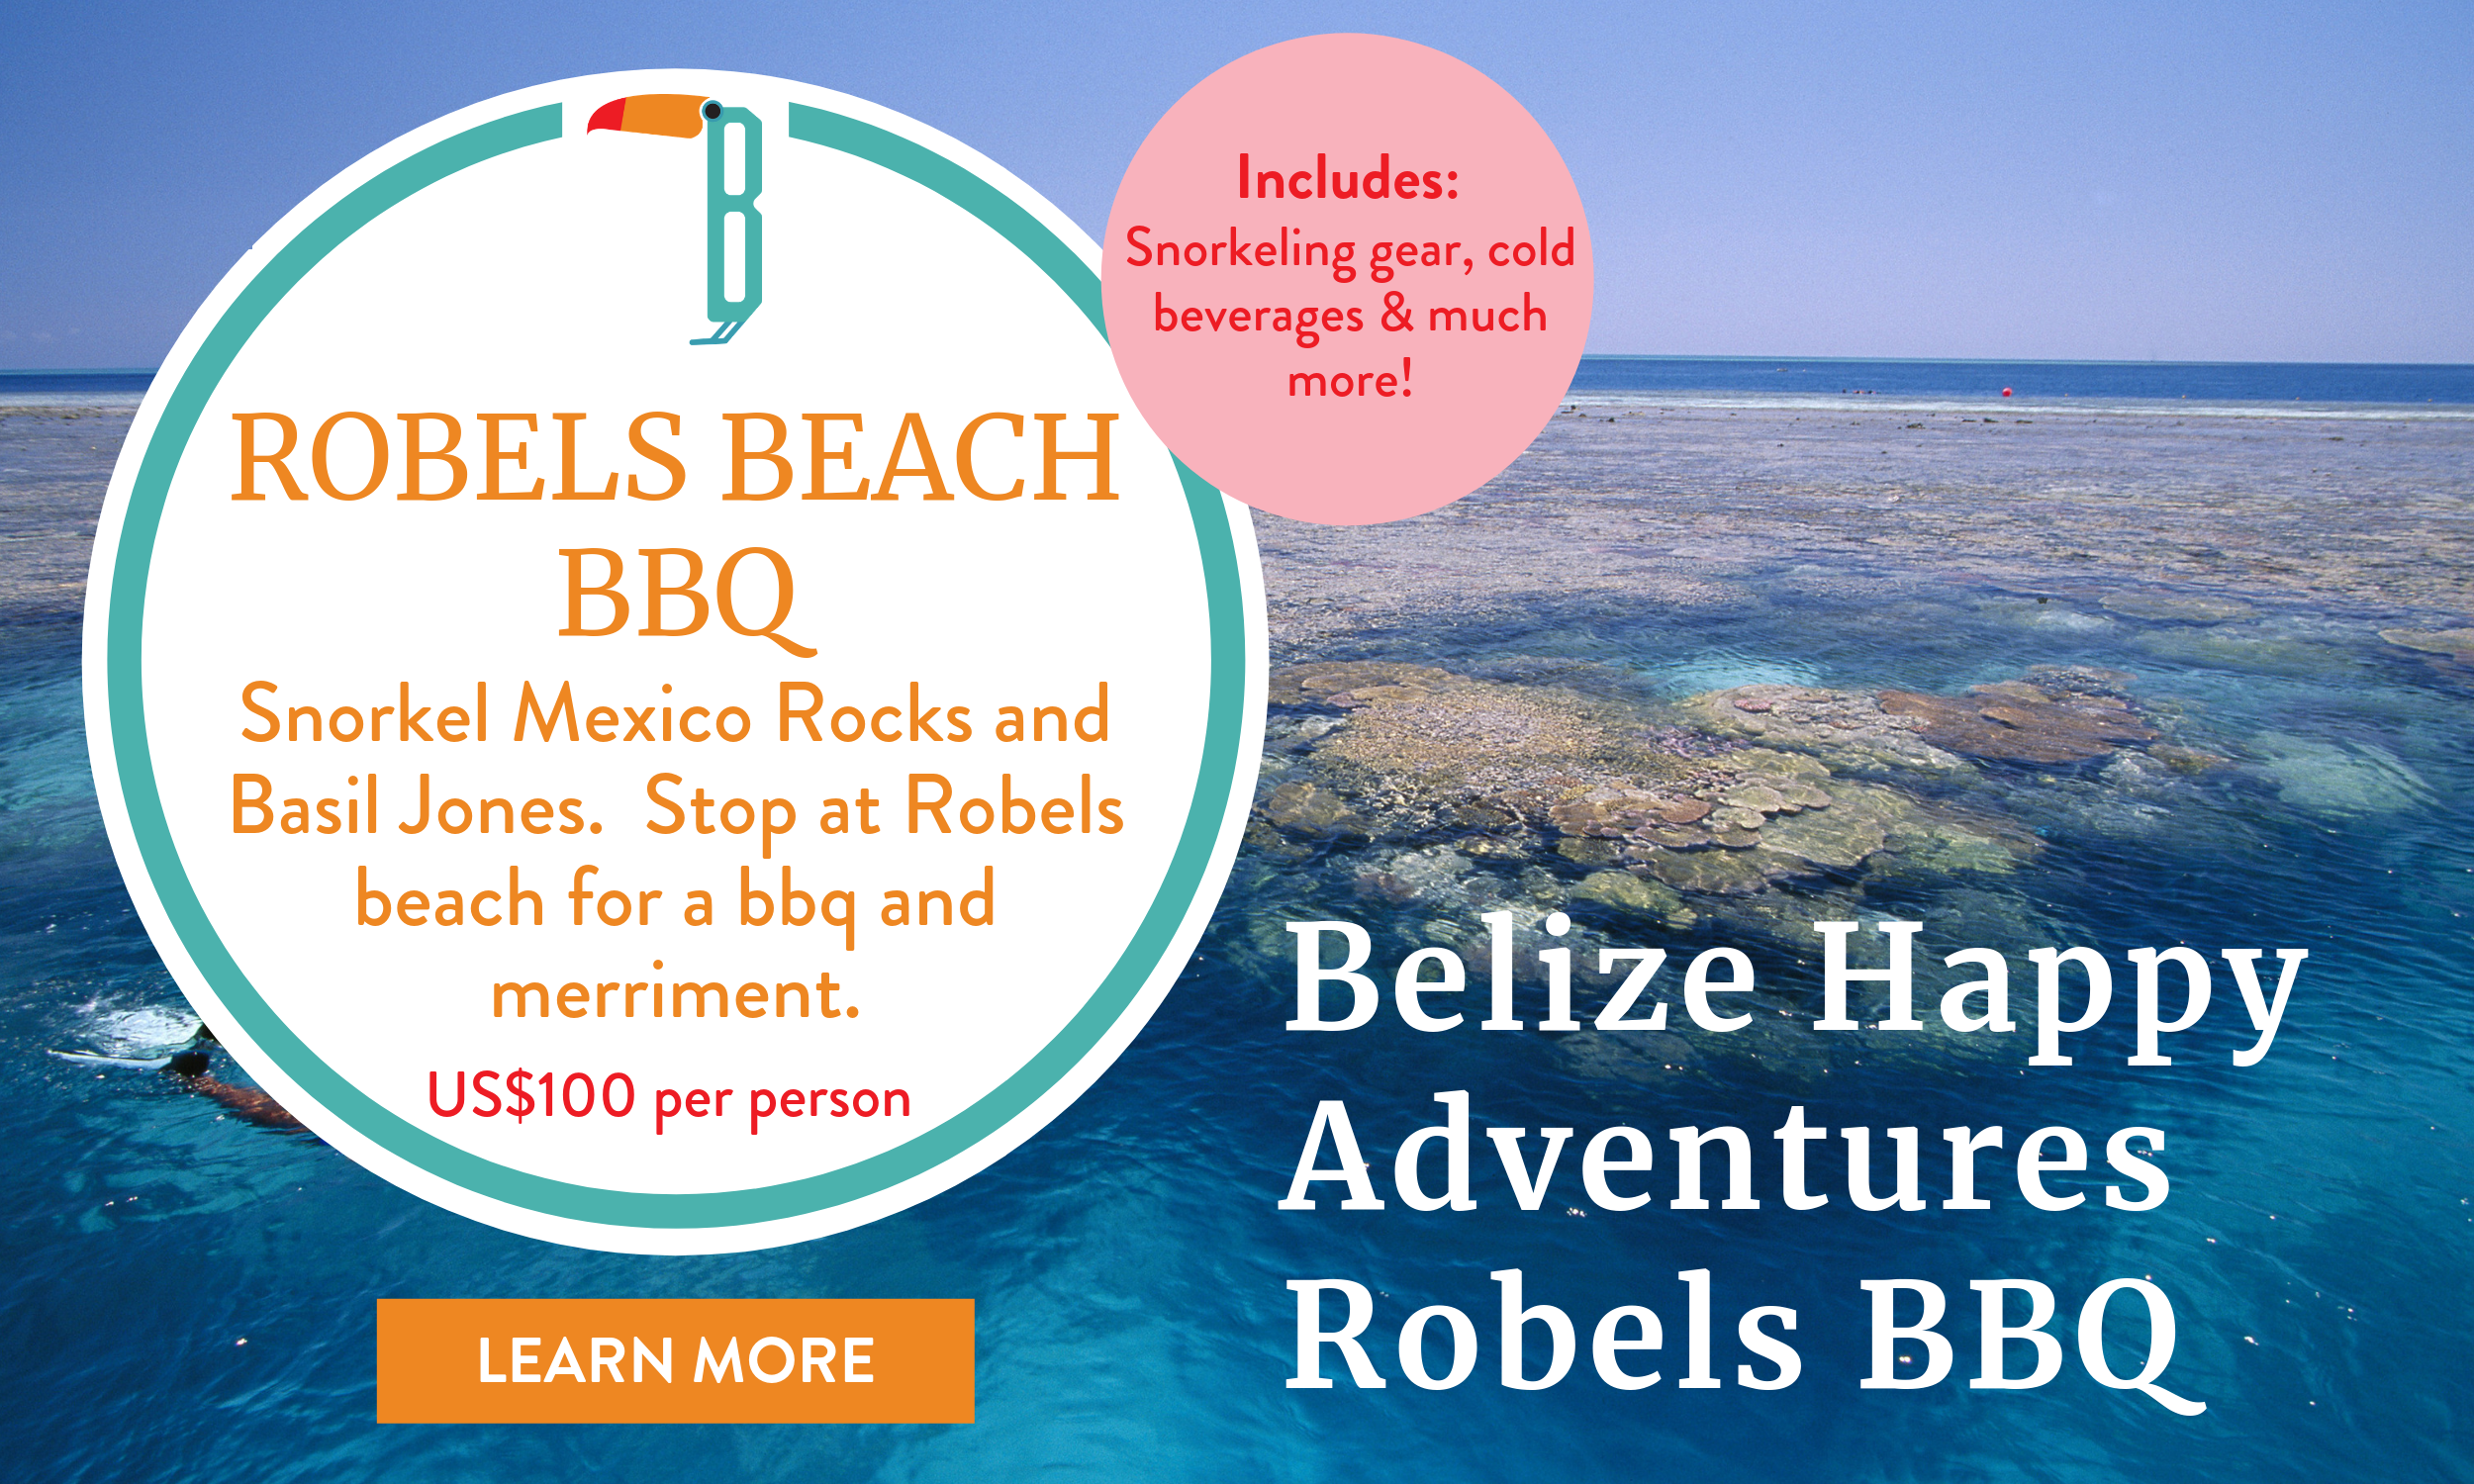 Robels Beach BBQ - Seaduced (1).png